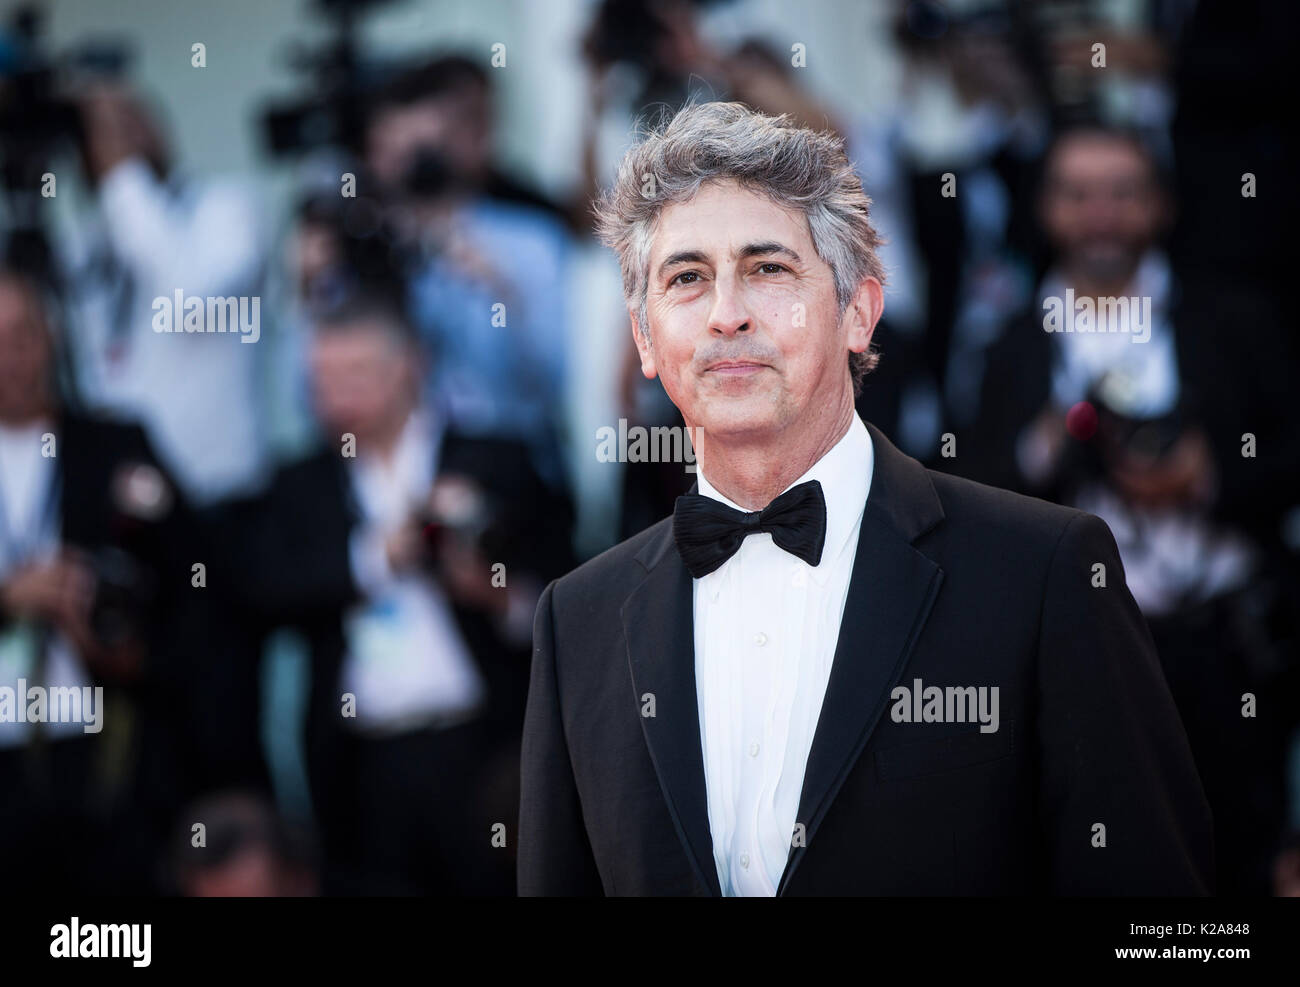 Venice, Italy. 30th Aug, 2017. Director Alexander Payne arrives on the red carpet of the premiere of the film 'Downsizing' which opens the 74th edition of the Venice Film Festival in Venice, Italy, on Aug. 30, 2017. The 74th edition of the Venice Film Festival lasts from Aug. 30 to Sept. 9. Credit: Jin Yu/Xinhua/Alamy Live News - Stock Image